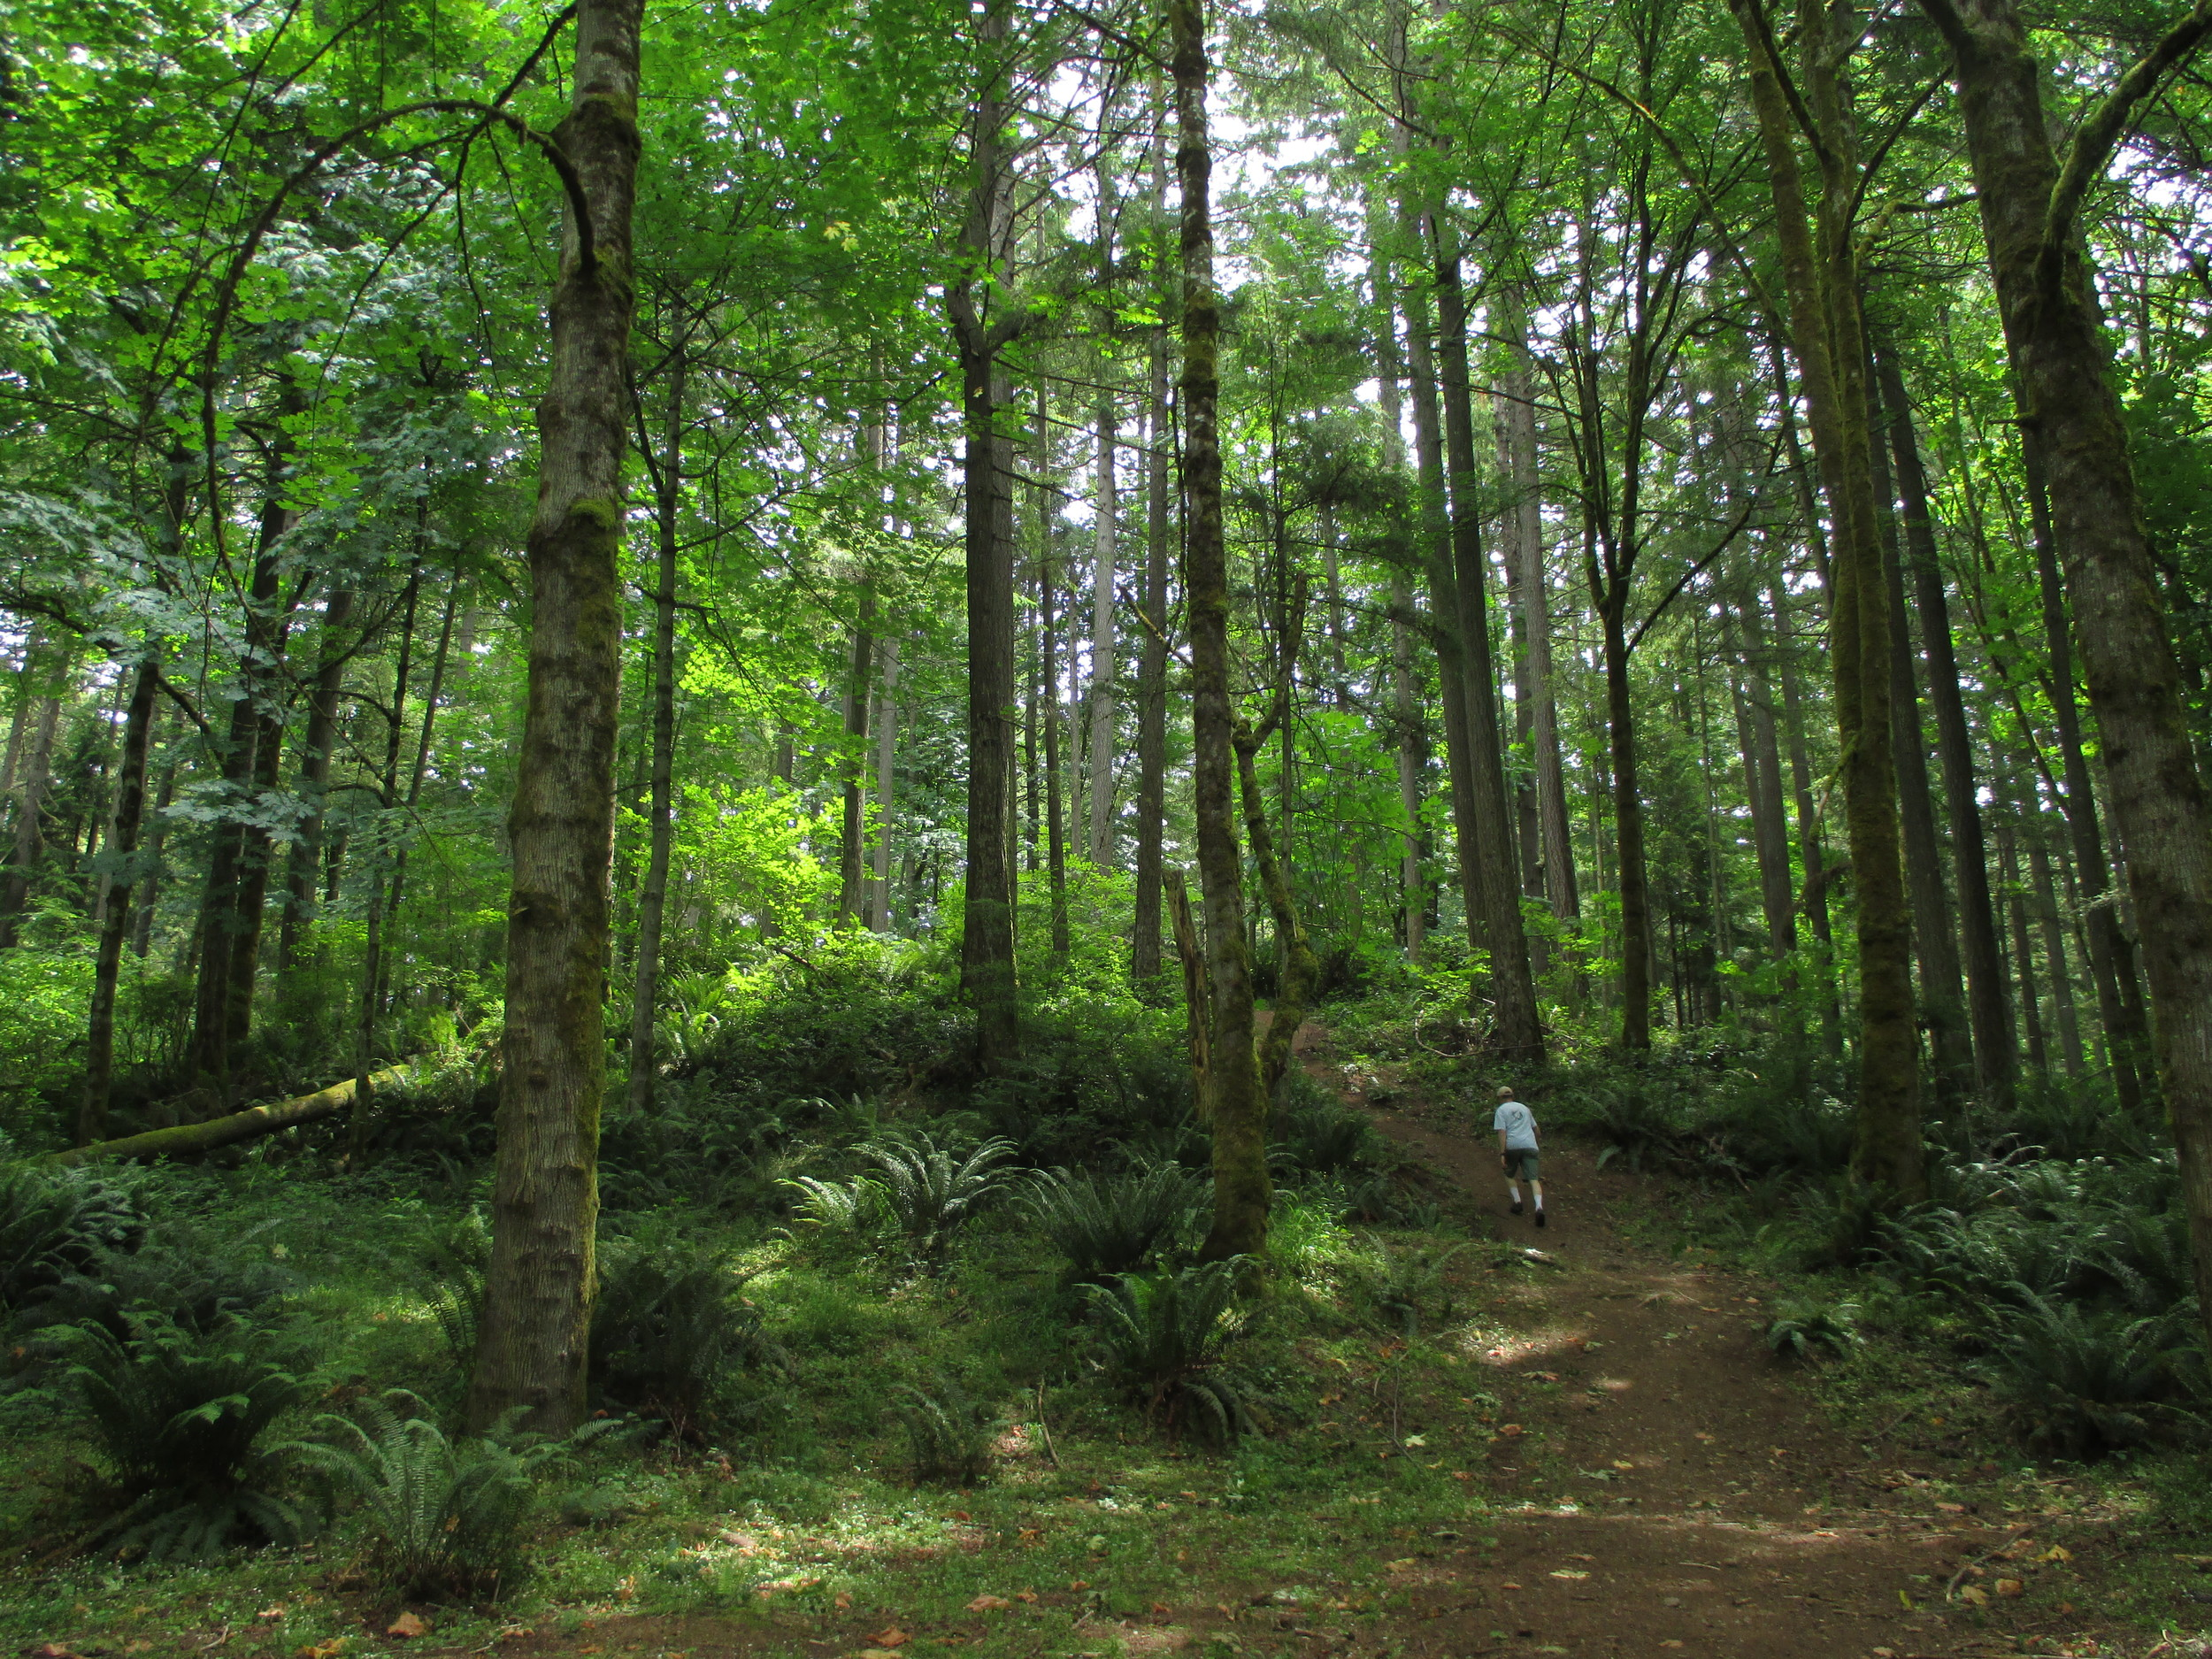 The LBA Woods in Olympia, Washington. What could be saved by the 2% tax city residents voted to establish to help fun the acquisition of 500 acres of wildlife habitat and future parkland.